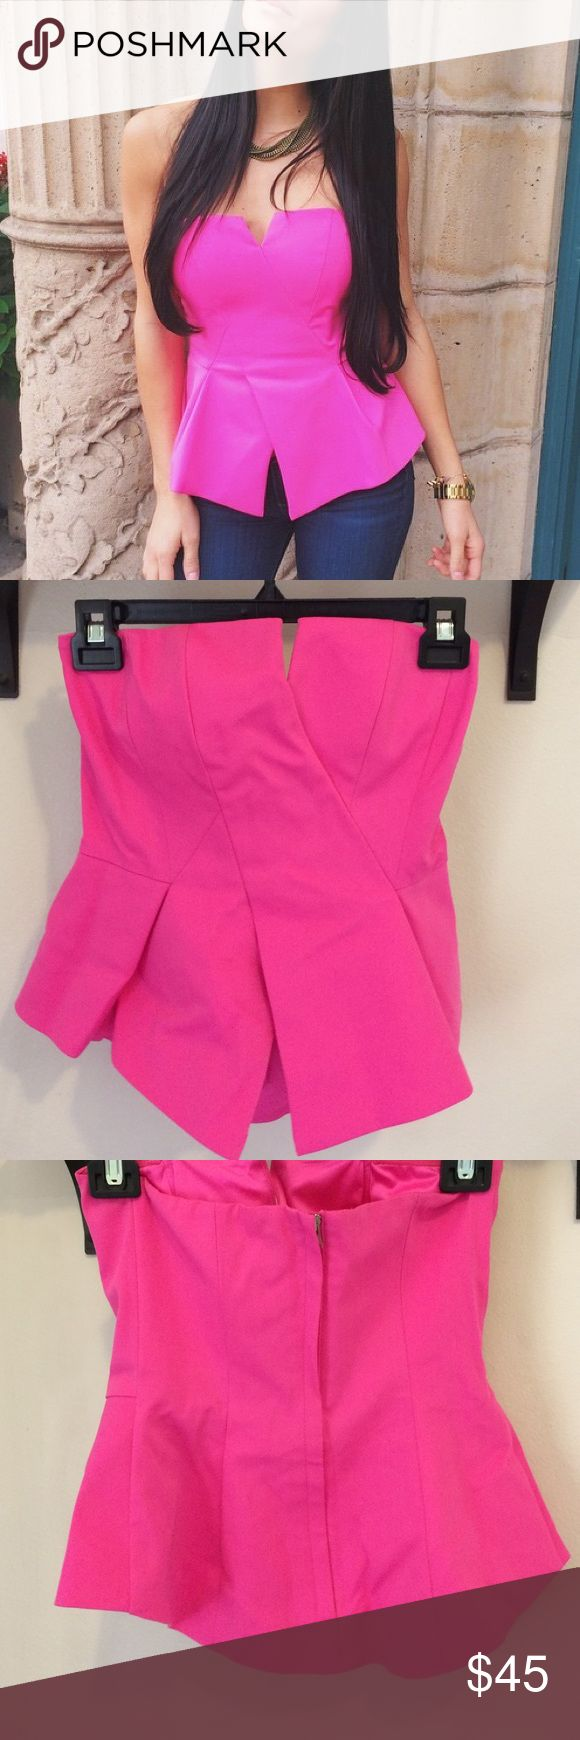 Bardot Hot Pink Peplum Top I wore this ONCE (in the picture) and felt like a brown haired Barbie!! I loved it. Amazing fit, wonderfully made and so cute and fun! Bardot Tops Blouses